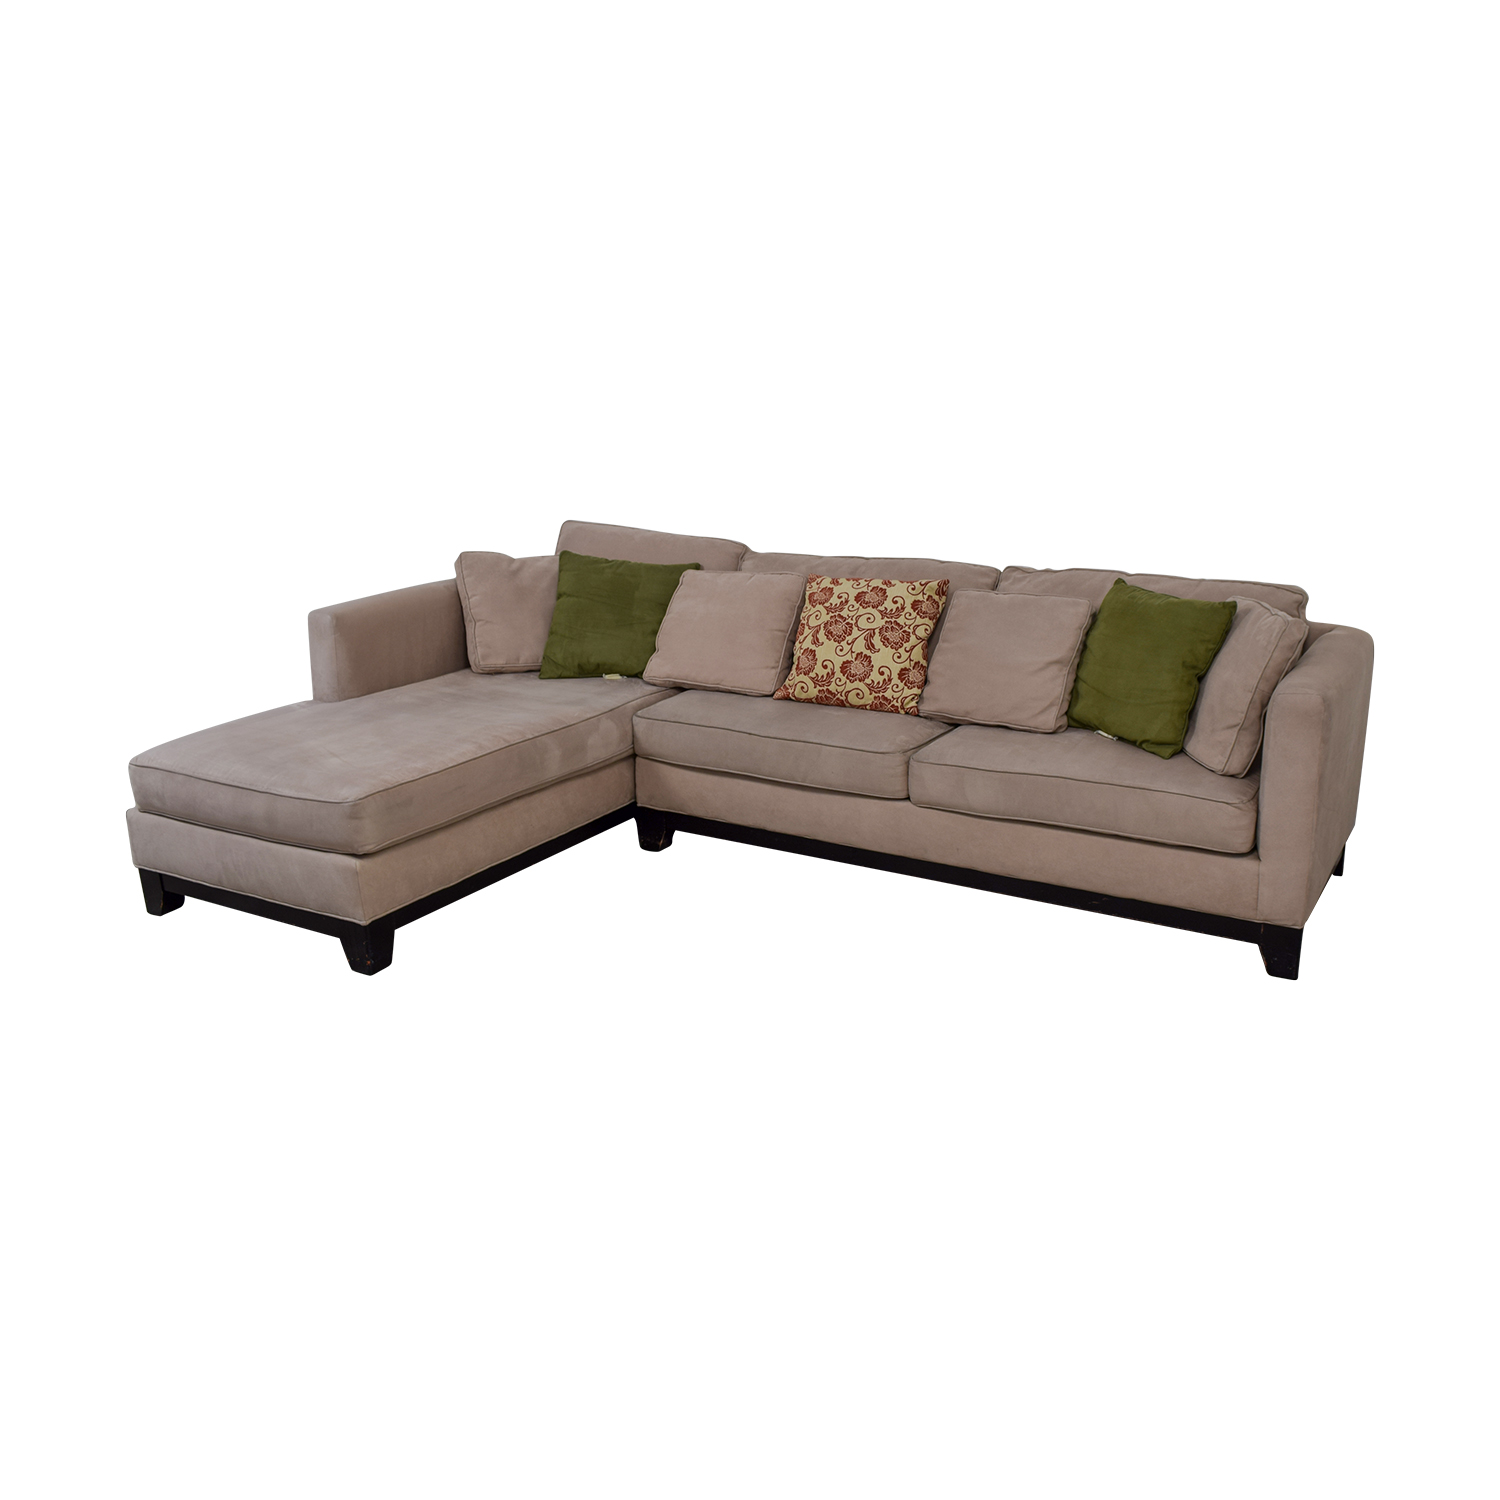 76 Off Macy S Macy S Microfiber Taupe Sectional Sofa